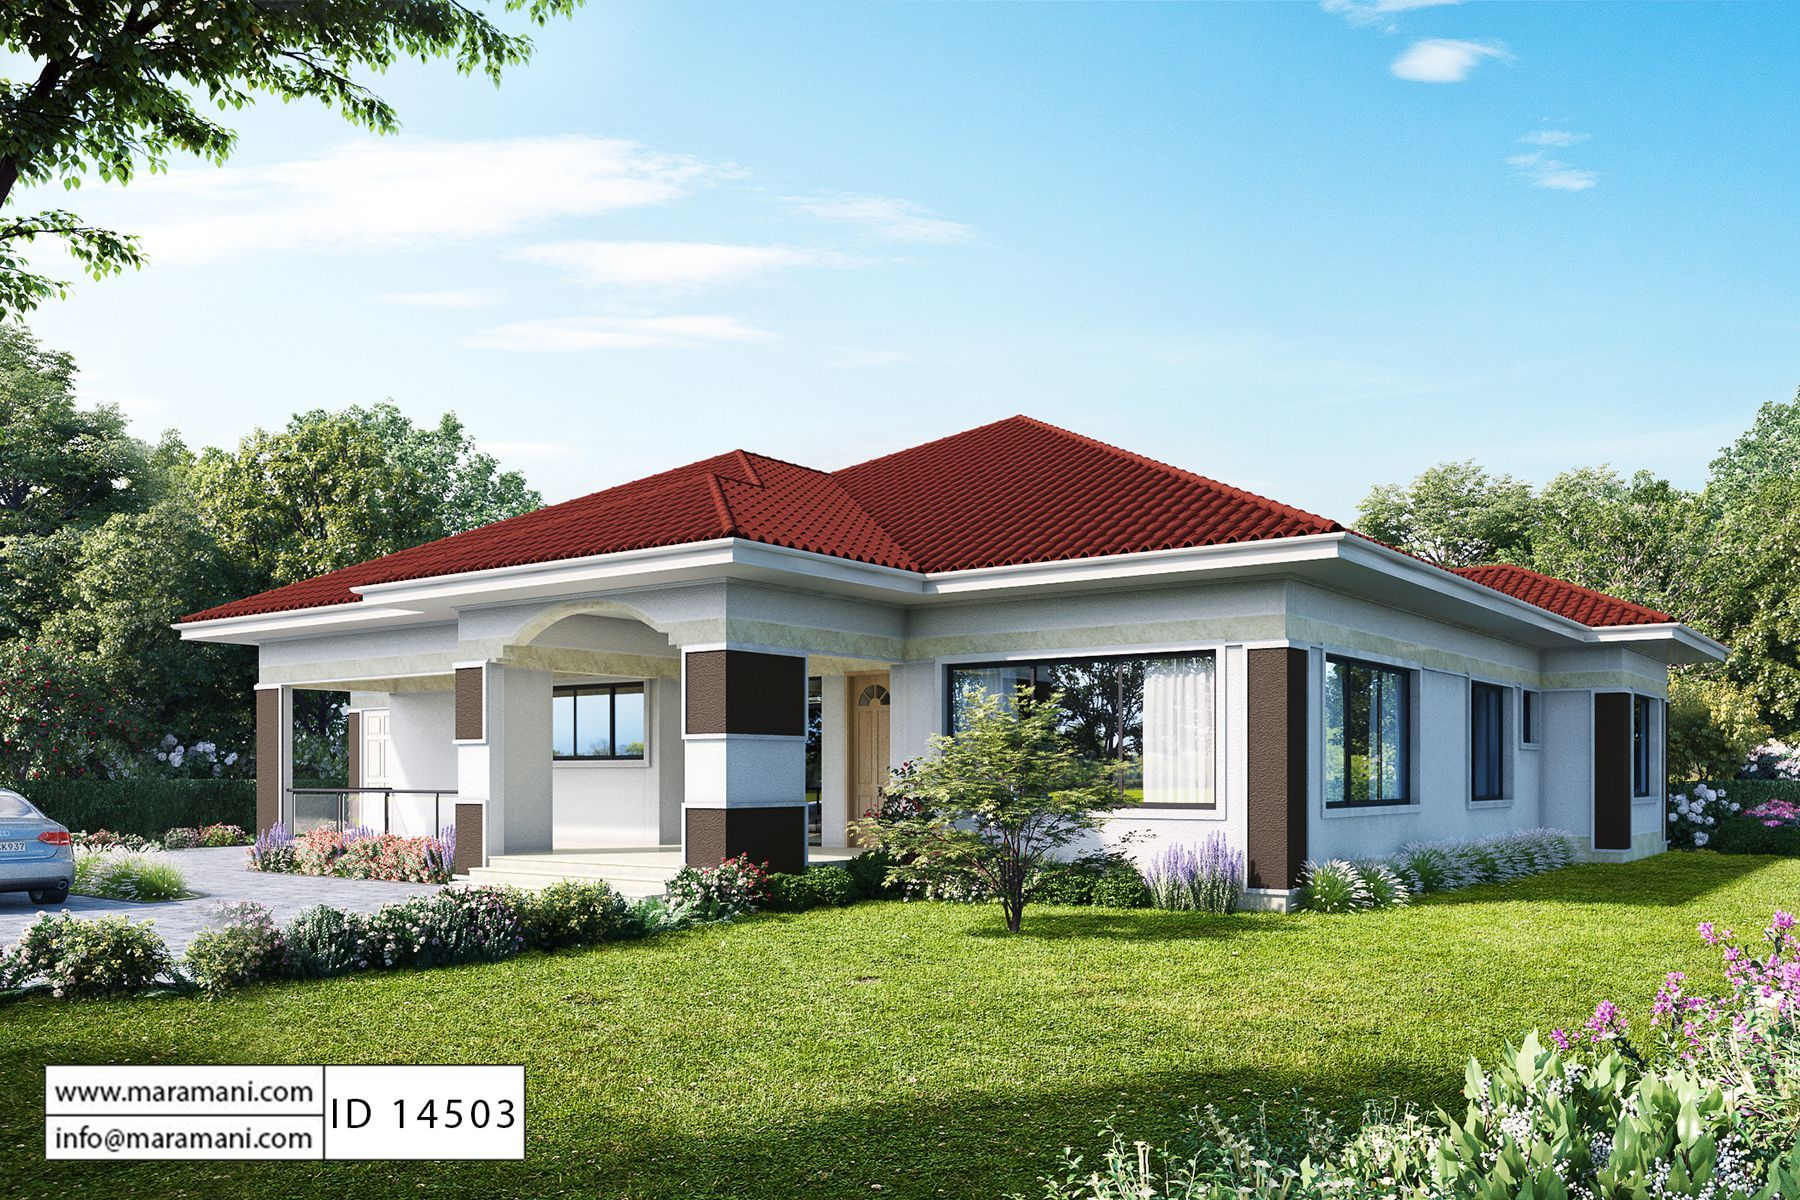 4 Room House Plan Id 14503 House By Maramani In 2020 House Roof Design Modern Bungalow House 4 Bedroom House Designs